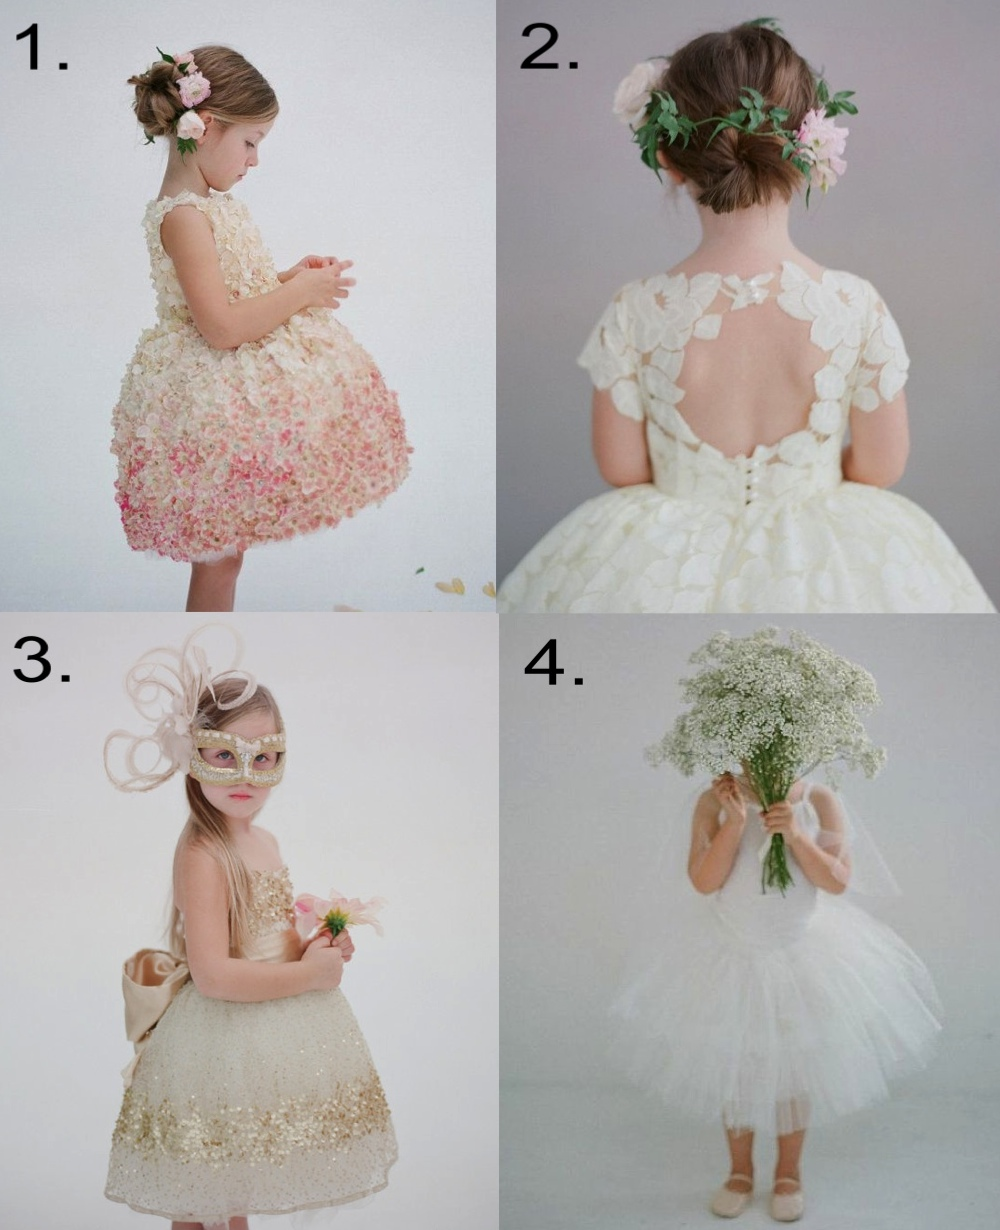 Doloris Petunia  (by Courtney Prince) on  etsy.com  makes to order the most amazingly beautiful Flower Girl Dresses, and she has dresses in all the four trends; 3-D floral appliqué, lace, embellished details and two-piece dresses... Dolores Petunia dresses will become a heirloom for your Flower Girl to treasure forever.  1.  Doloris Petunia The Pamela Flower Girl Dress  2.   Doloris Petunia  The Annabelle Flower Girl Dress  3.   Doloris Petunia  Gold Constellation Flower Girl Dress  4.   Doloris Petunia  The Allyson Flower Girl Tutu Skirt